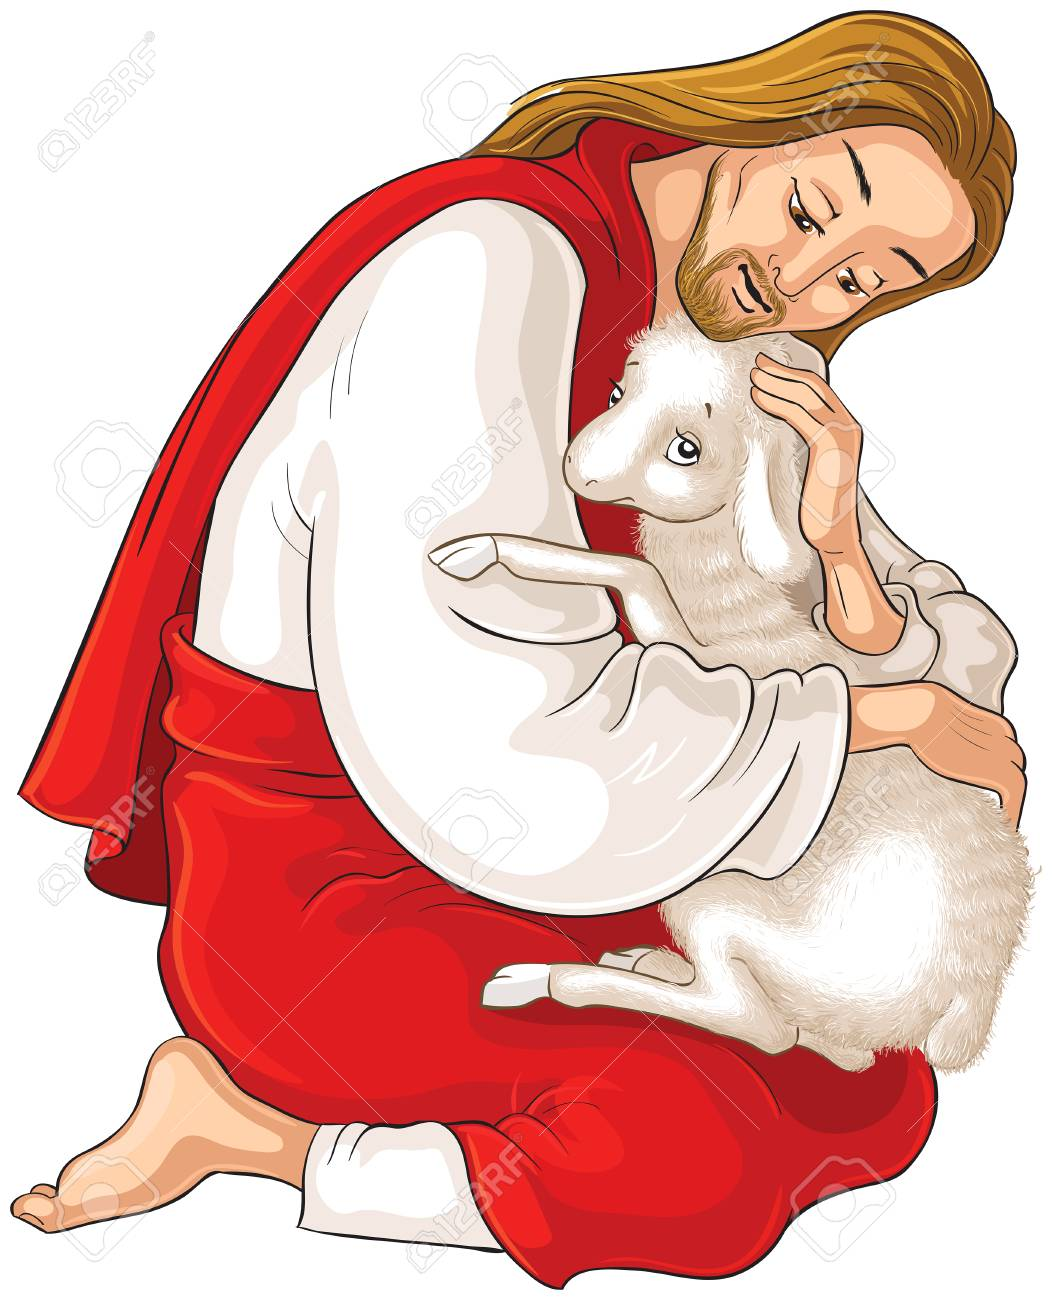 History of Jesus Christ. The Parable of the Lost Sheep. The Good Shepherd Rescuing a Lamb Caught in Thorns isolated on white - 117426792